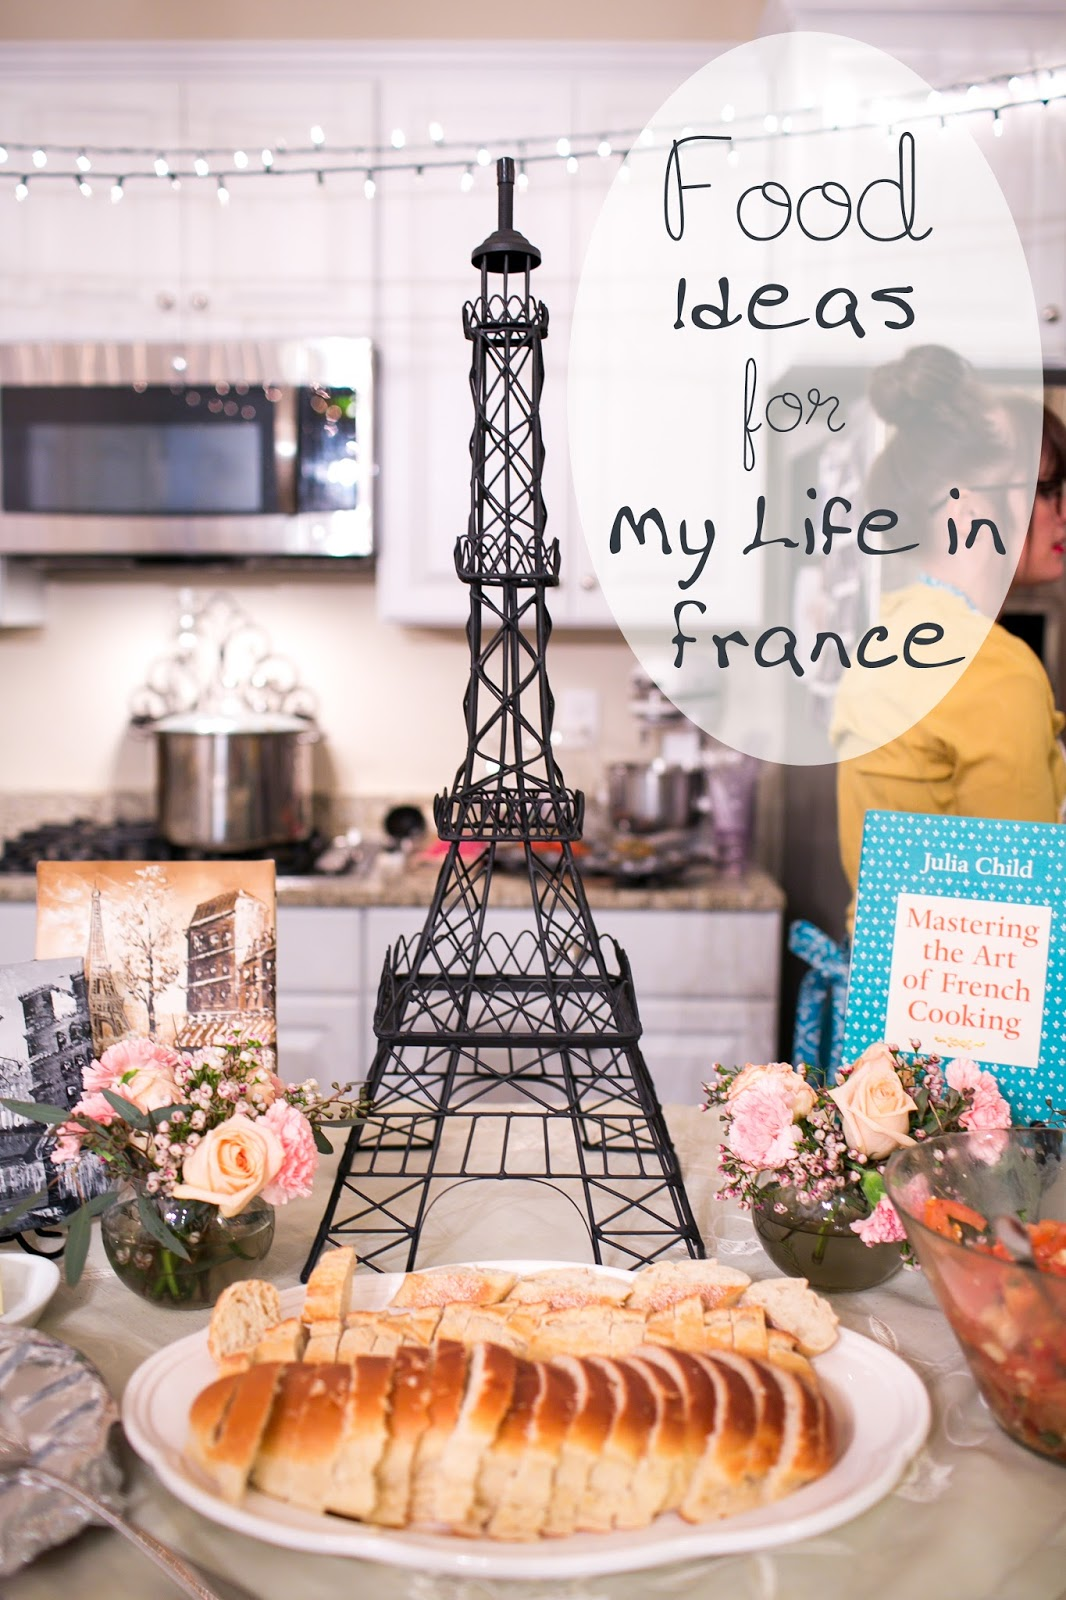 Delicious reads food ideas for my life in france for Cuisine francaise decoration